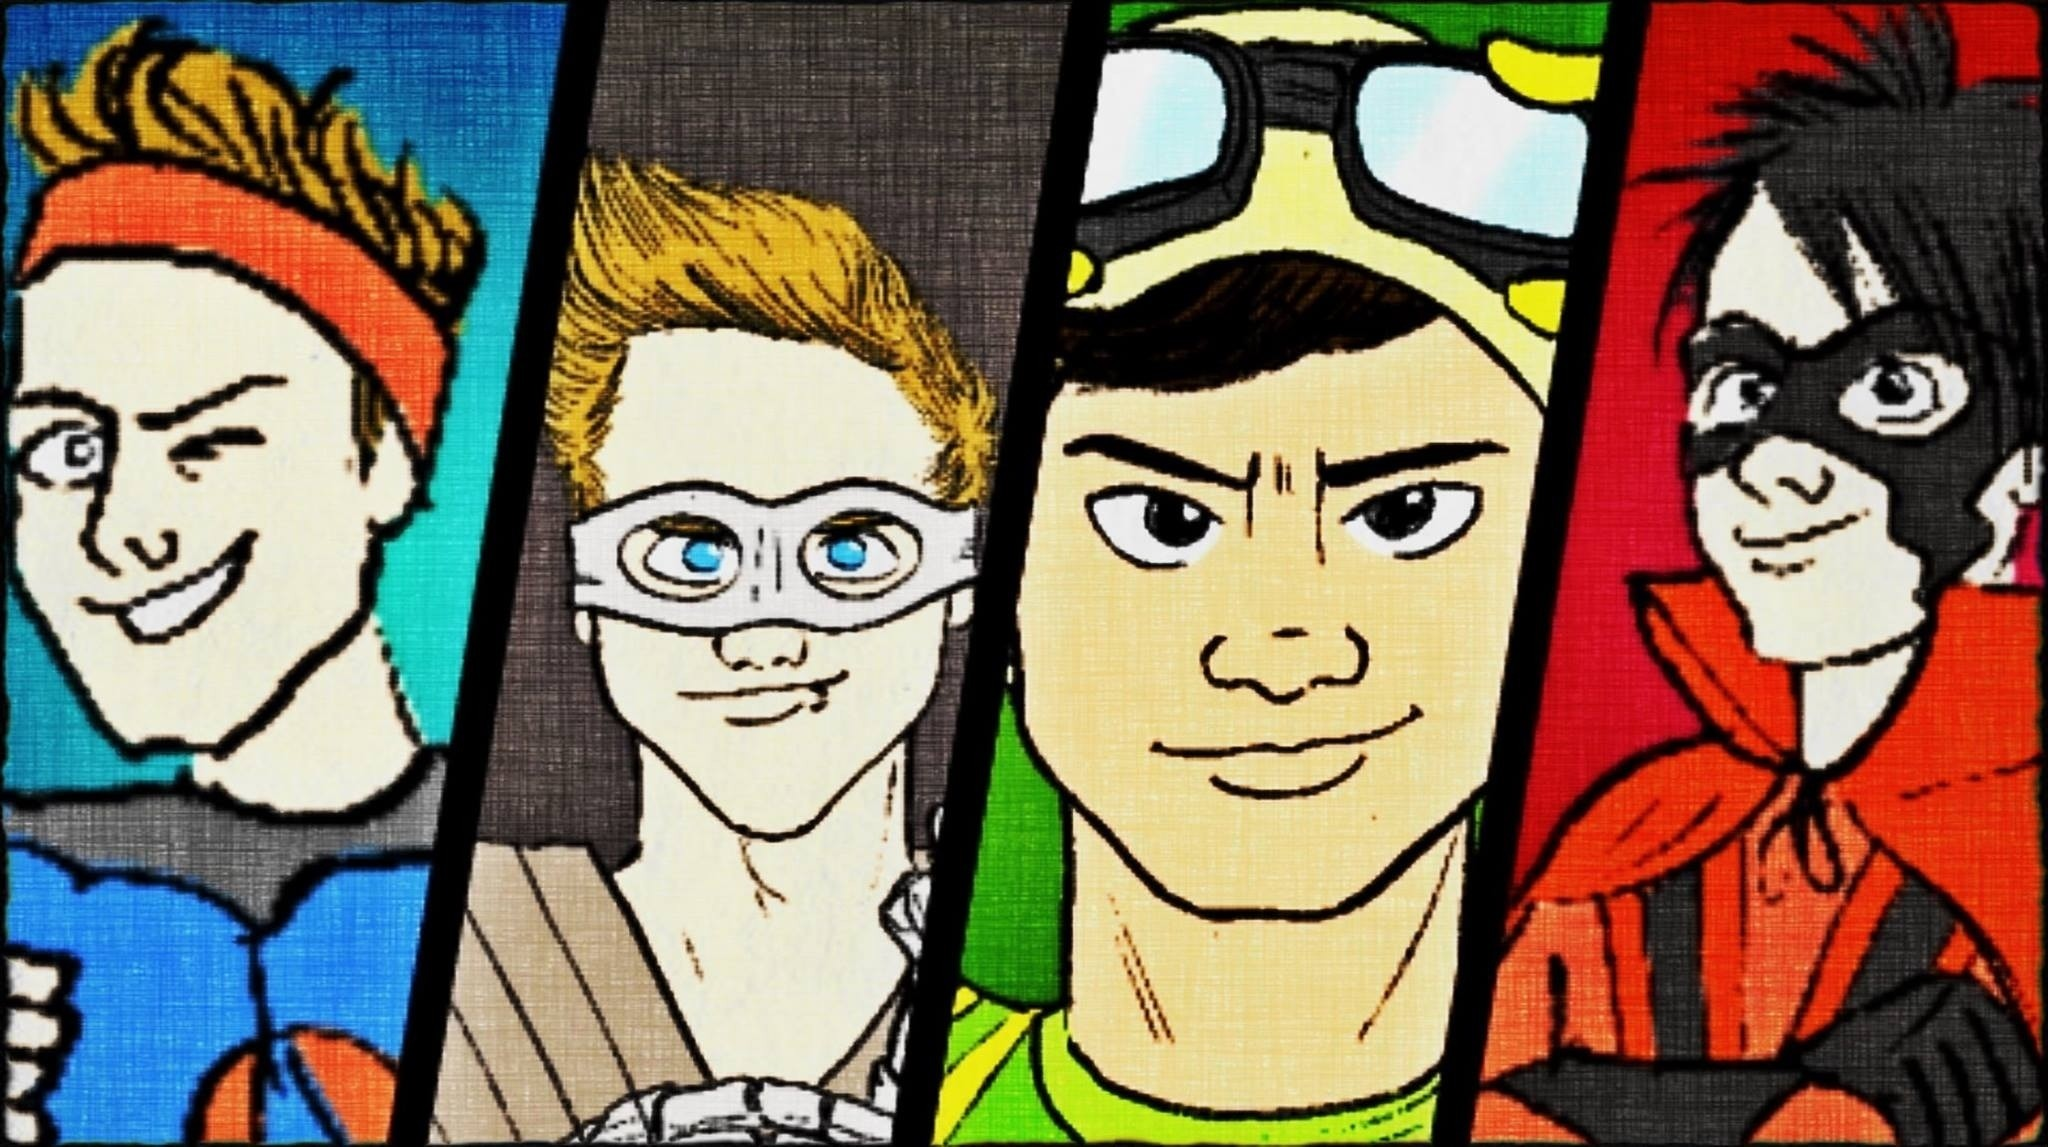 Don't stop., 5 Seconds Of Summer 'Don't Stop'